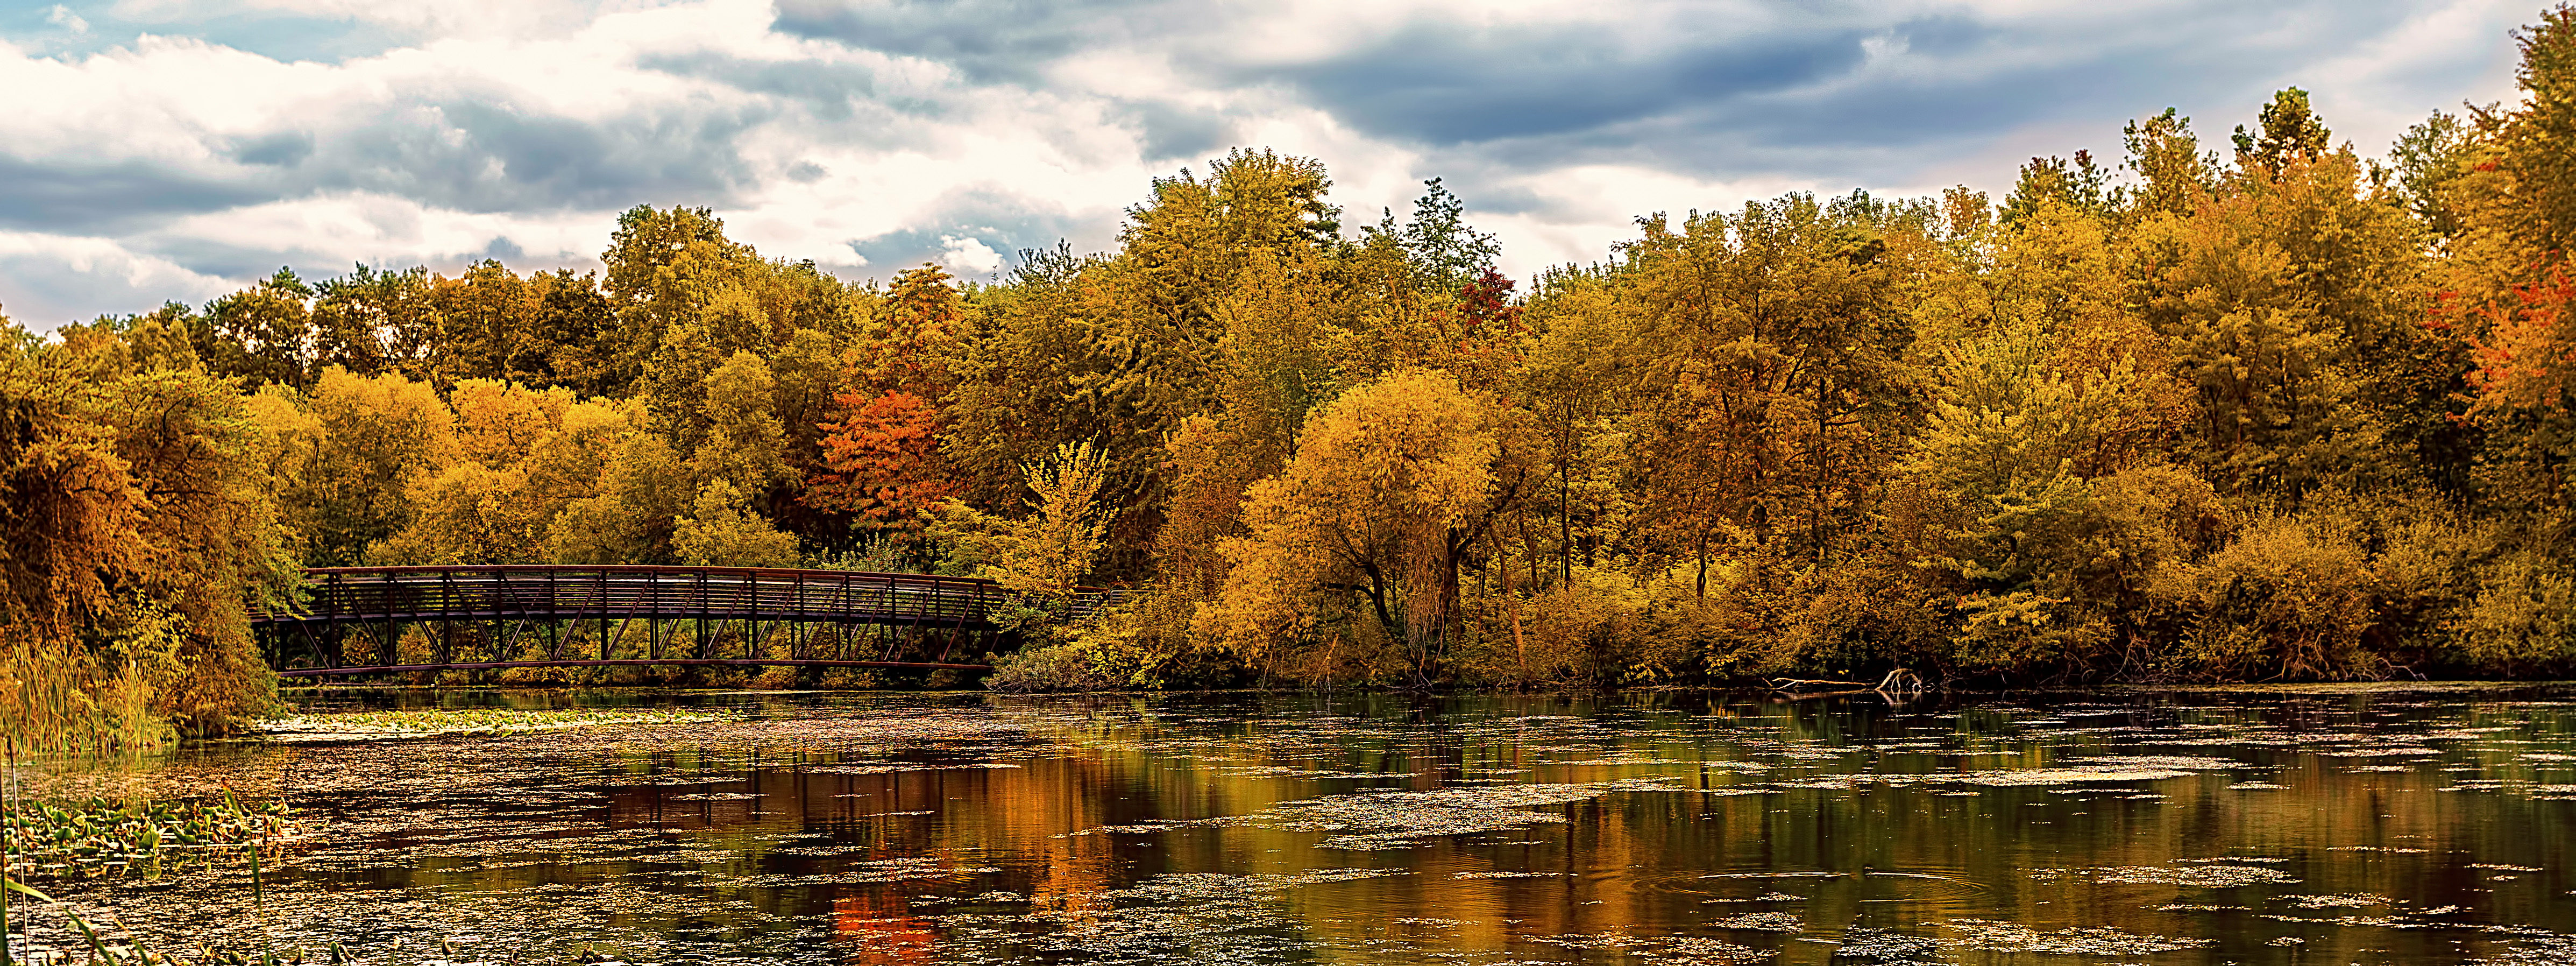 Early Fall Hd Wallpaper Bridge Beginning Of November Edward Byrne Photography